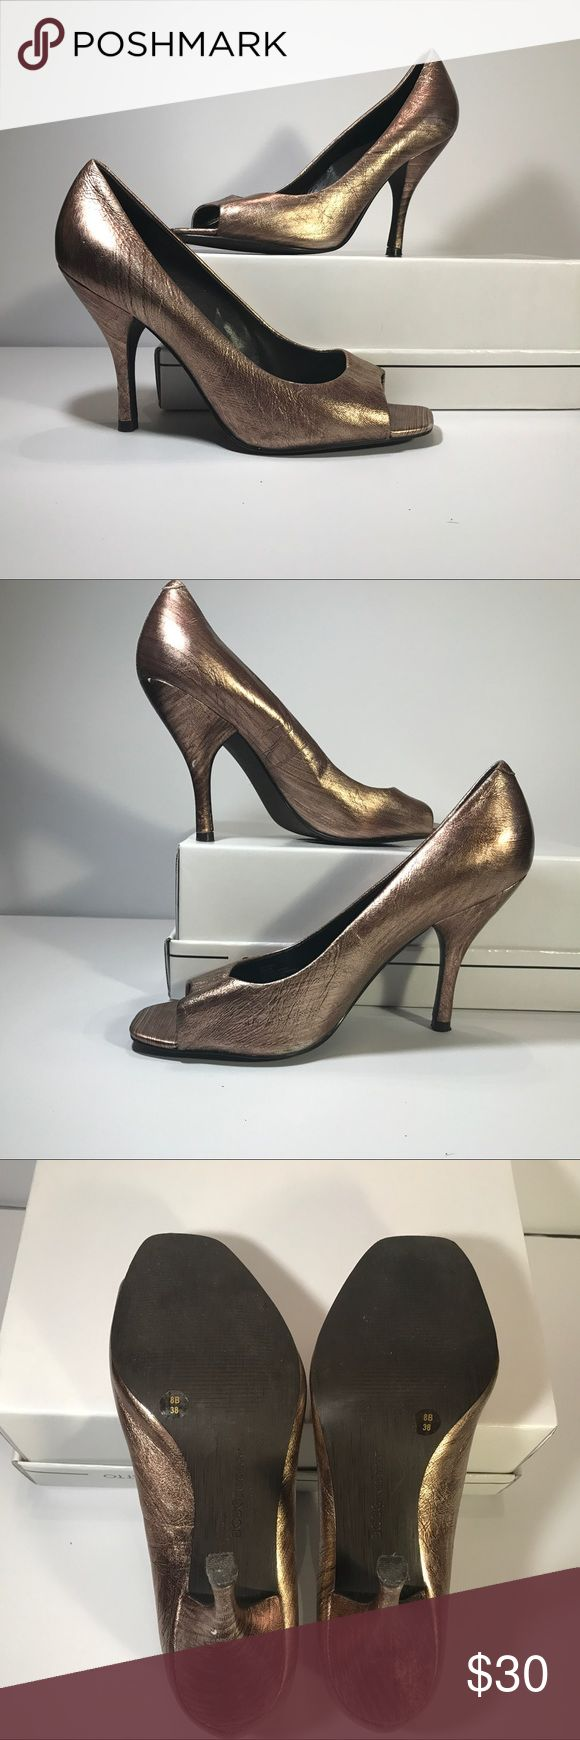 BCBGENERATION Ariel Brushed Metallic Heel BCBGENERATION Ariel Brushed Metallic Bronze Gold Open Toe Leather Heel. Women's Size 8. LIKE NEW CONDITION! BCBGeneration Shoes Heels